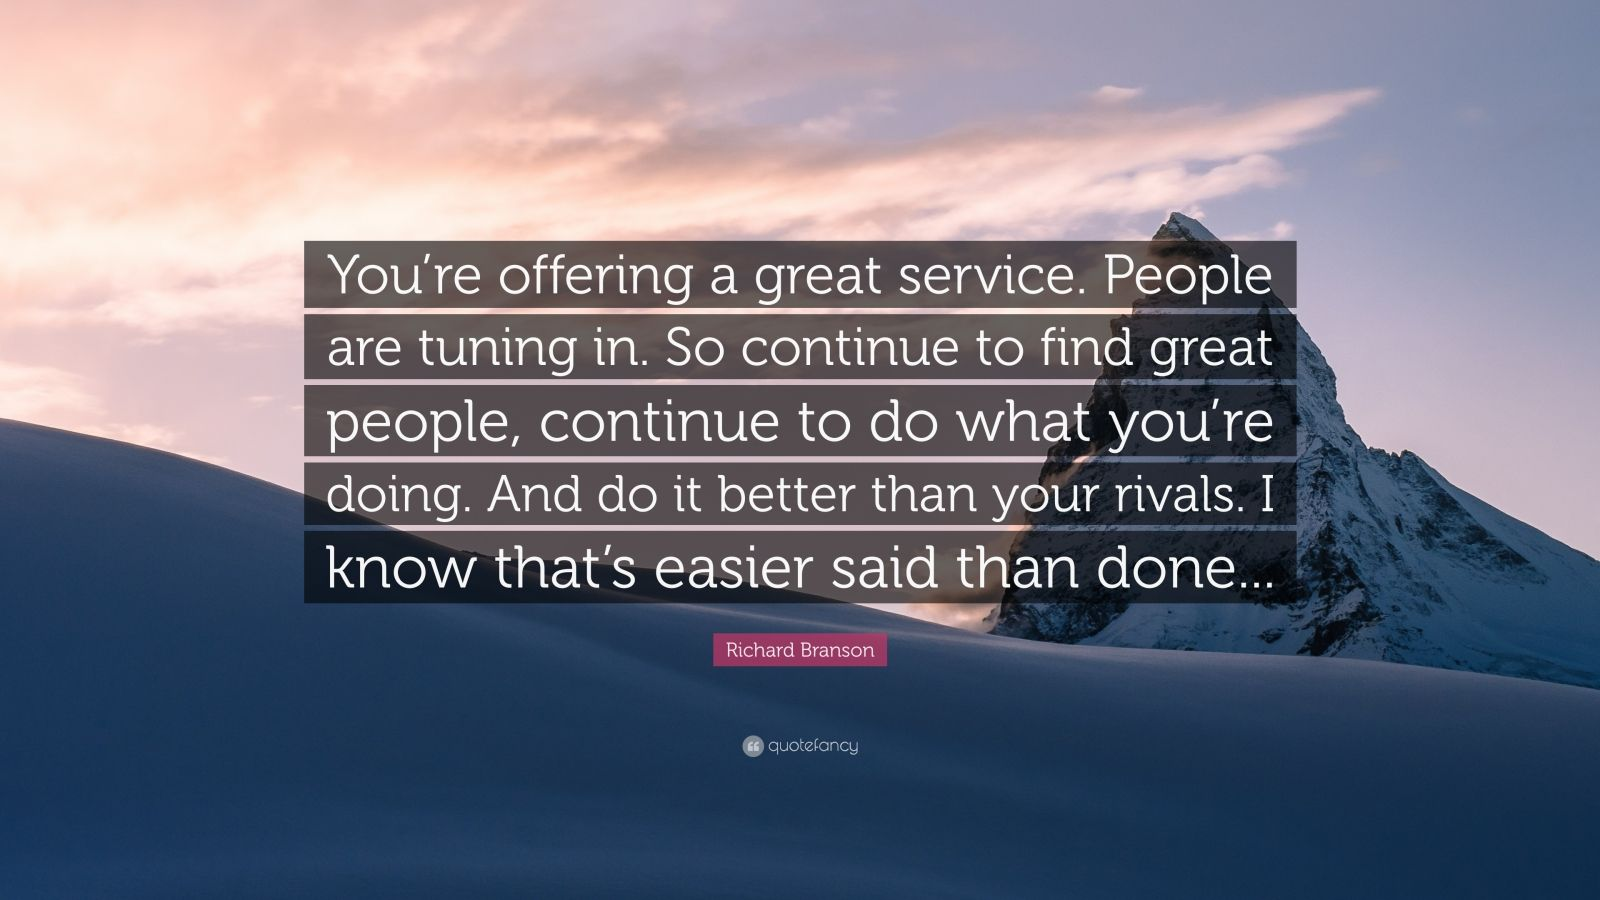 """Richard Branson Quote: """"You're offering a great service. People are tuning in. So continue to find great people, continue to do what you're doing. And do it better than your rivals. I know that's easier said than done..."""""""